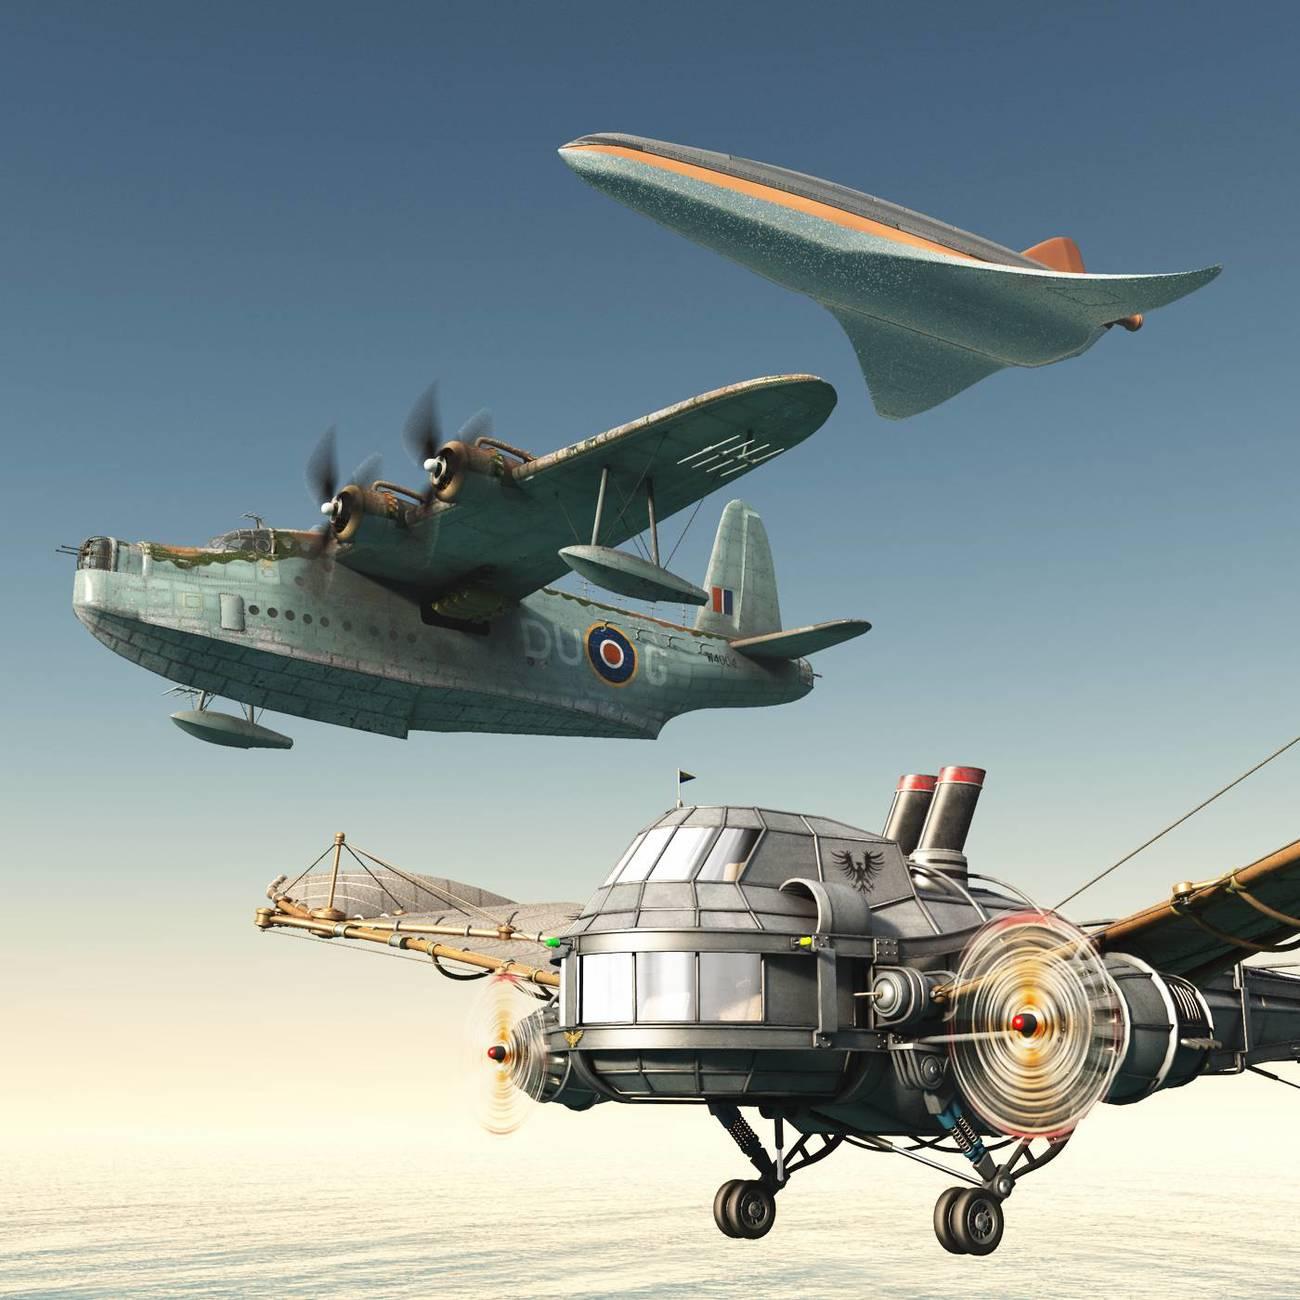 Alternative Worlds of Aviation by rps53